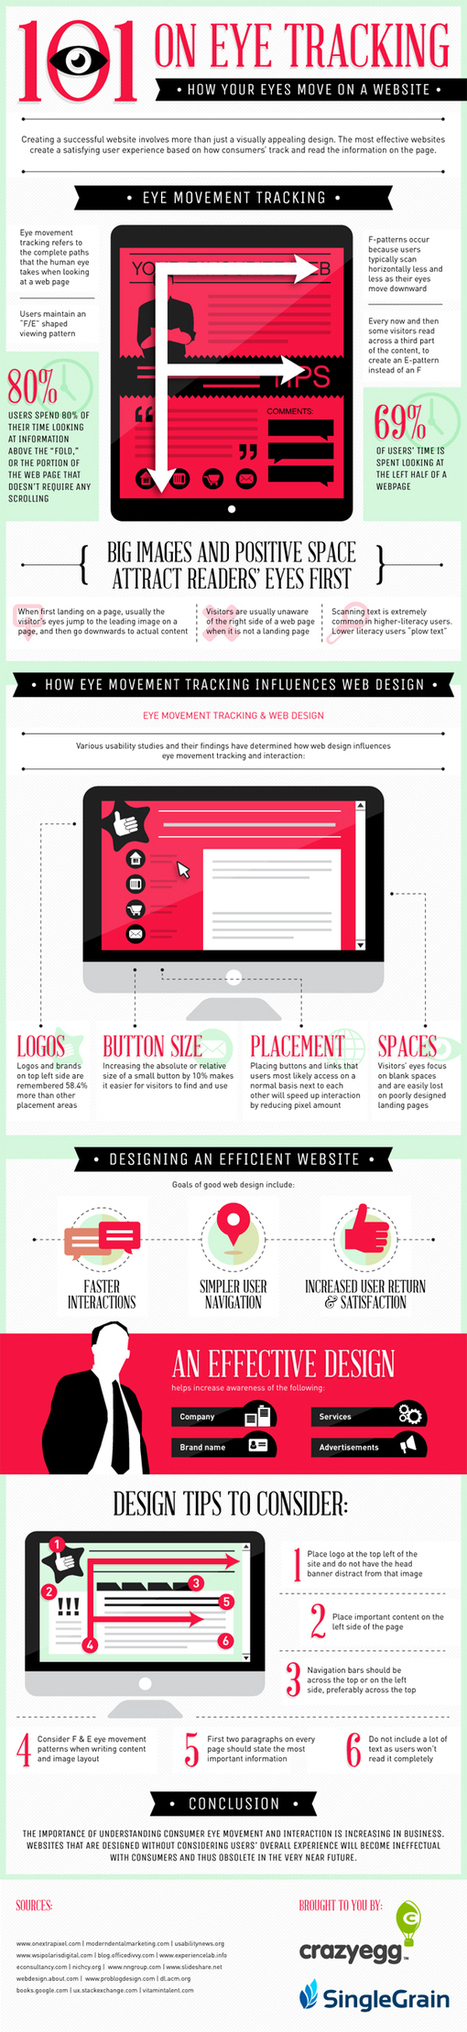 Eye Tracking 101: How Your Eyes Move on Websites [Infographic] | Websites - ecommerce | Scoop.it